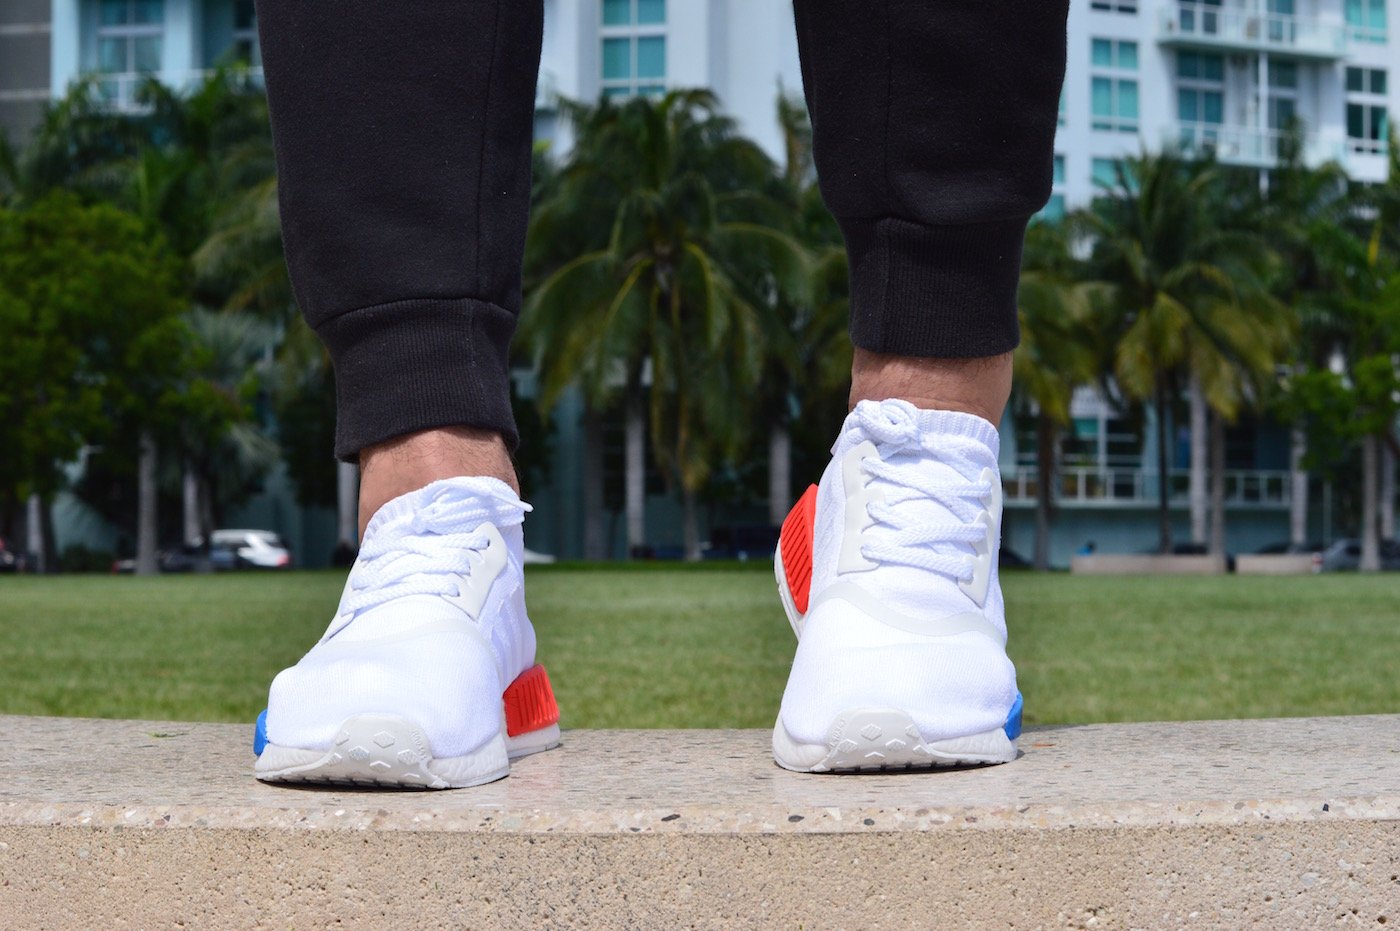 adidas NMD R1 Primeknit On Feet Front View White Red Blue